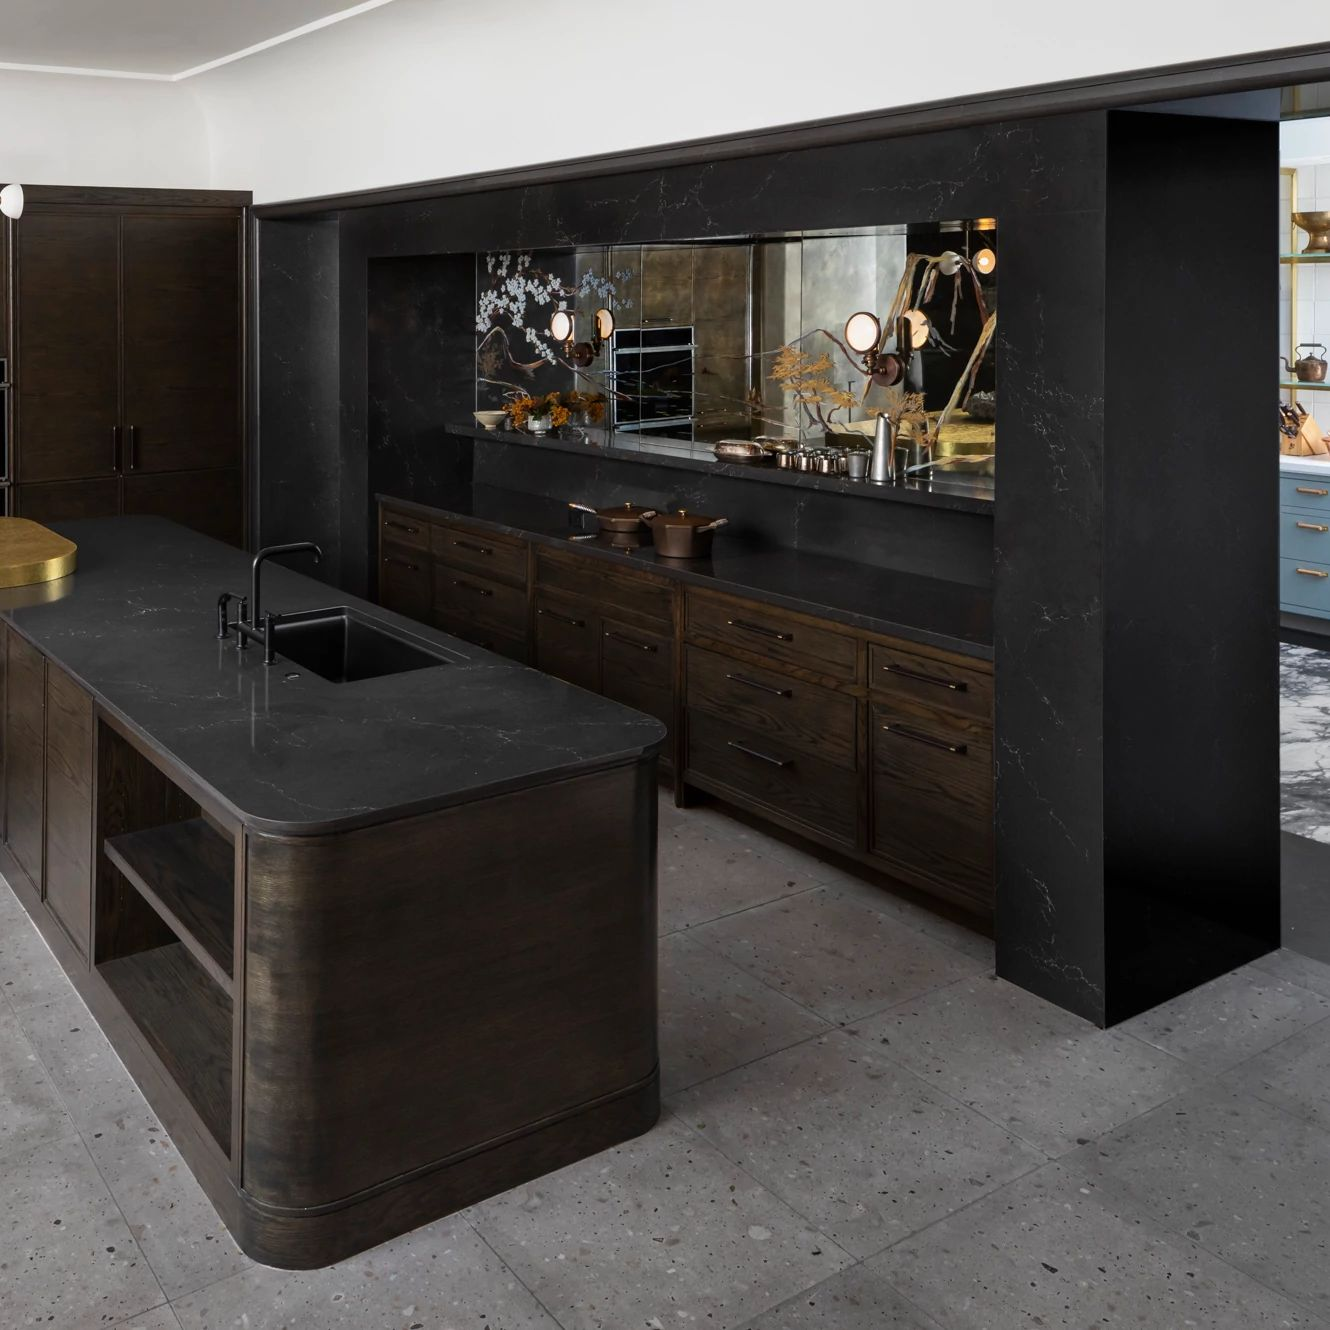 A picture containing indoor, floor, room, kitchen  Description automatically generated